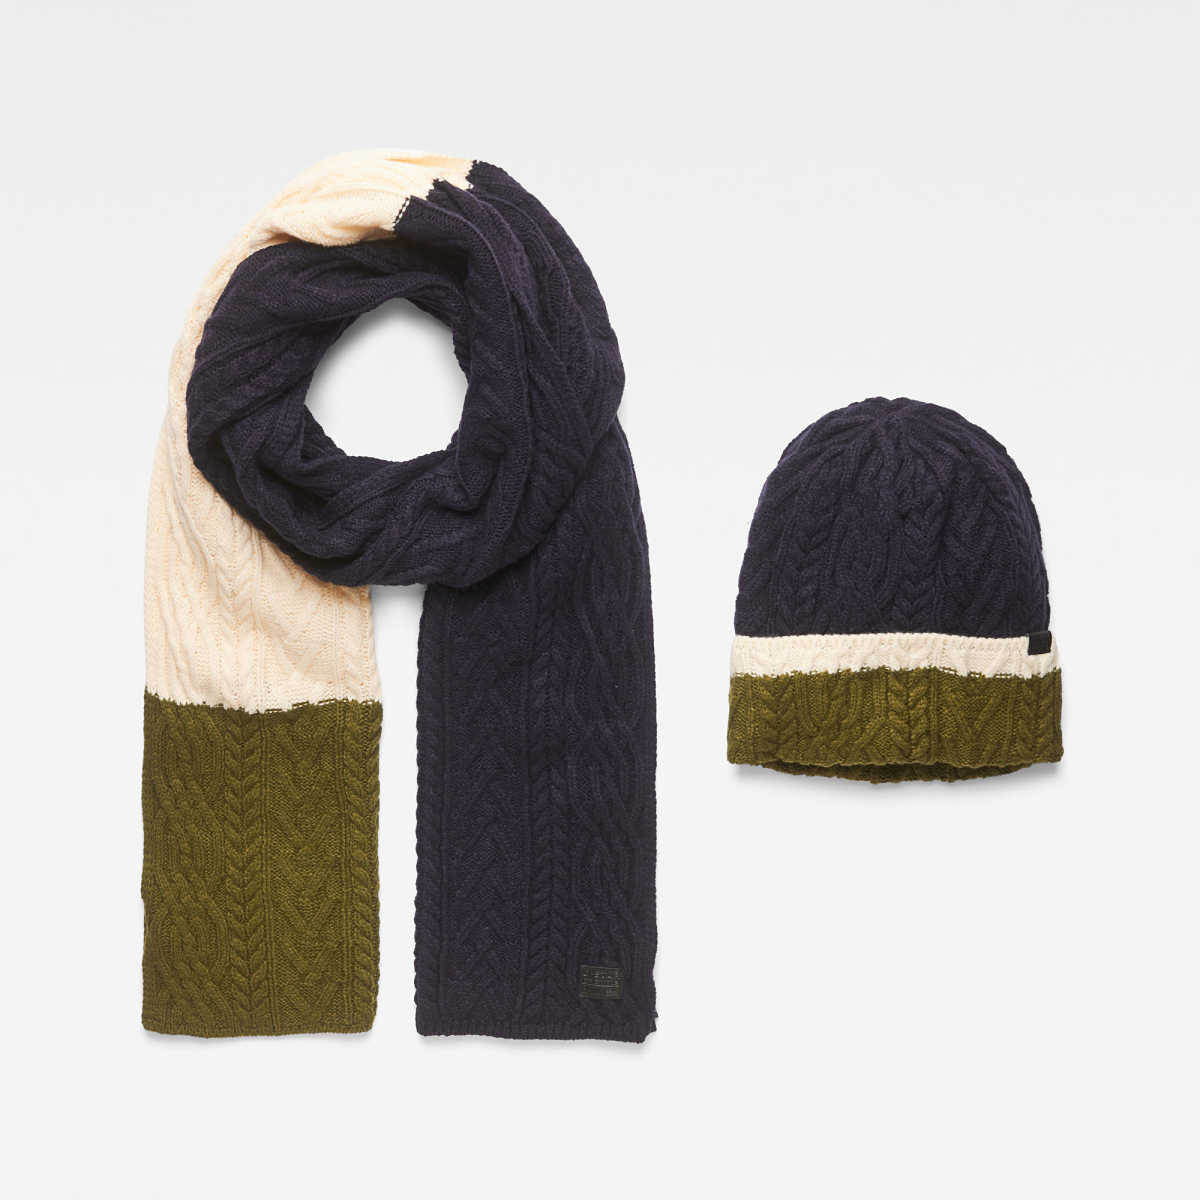 G-Star Male Xemy Cable Scarf Beanie Giftpack Accessories Dark Blue USA - GOOFASH - Mens HATS